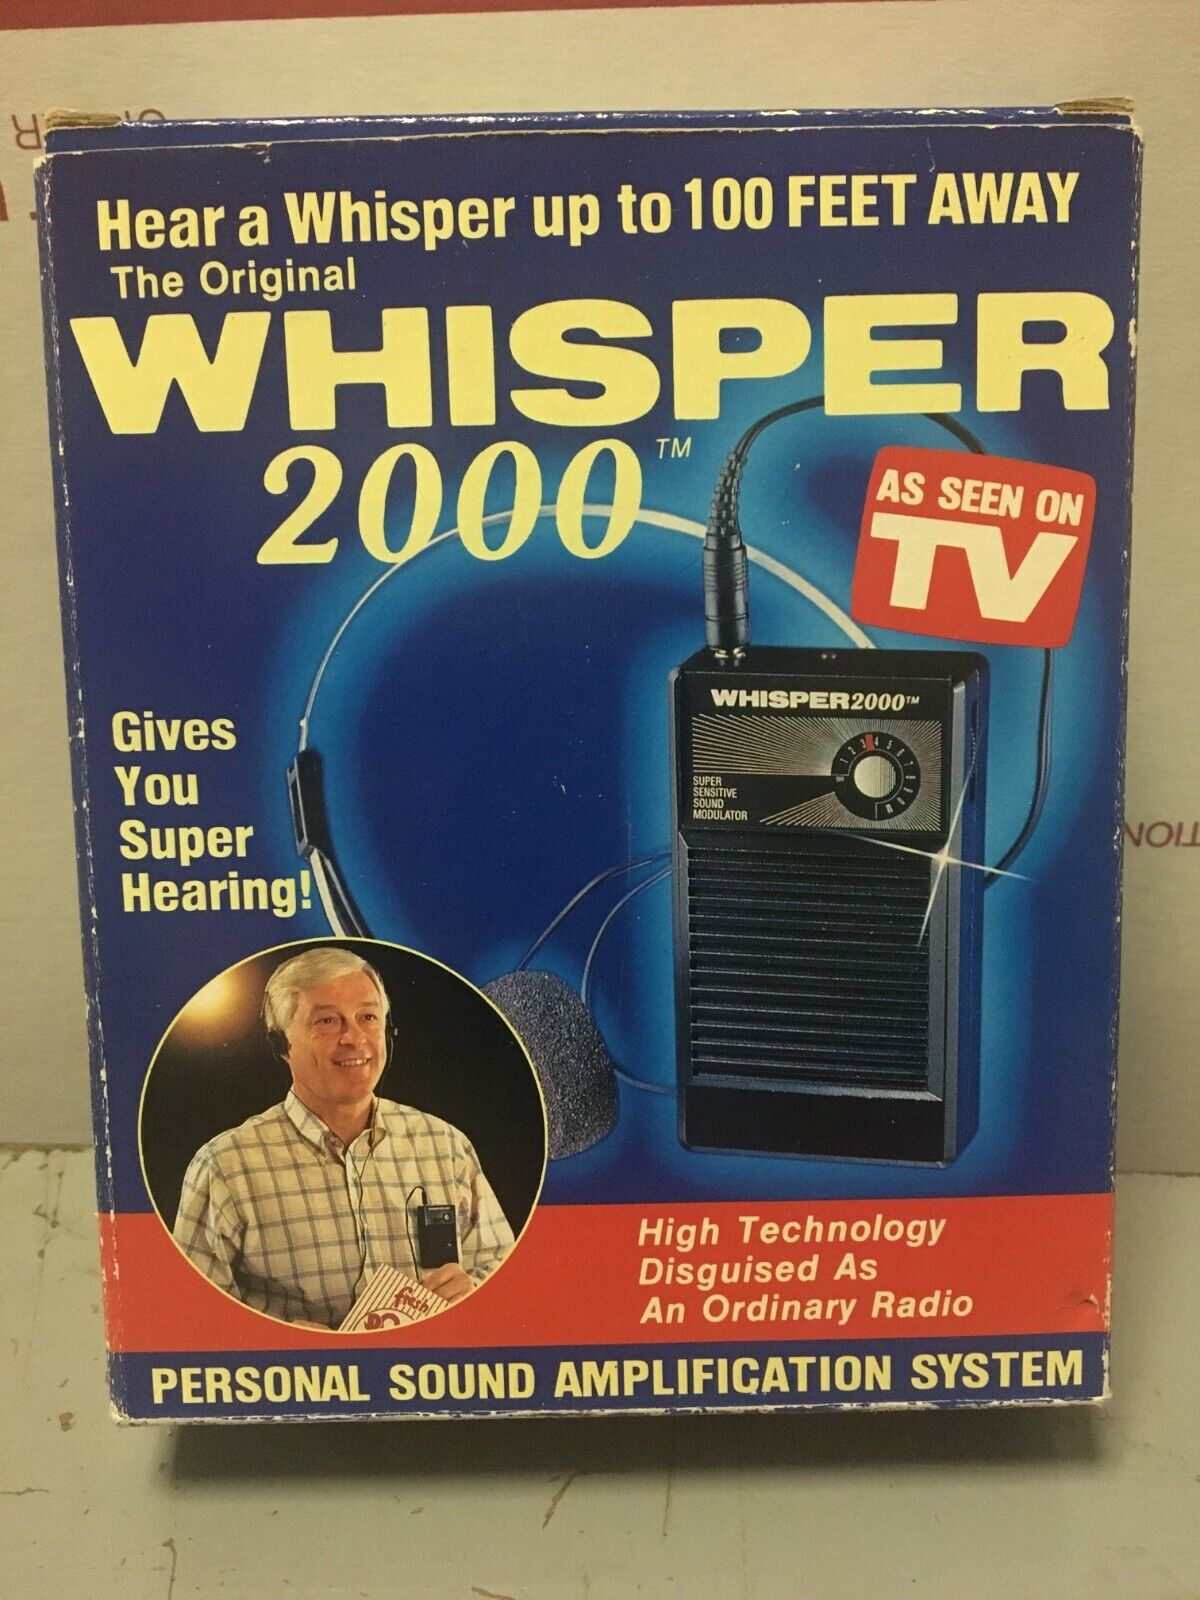 Whisper 2000 Personal Sound Amplification Hearing 1989 Model WS-2000  - $19.99